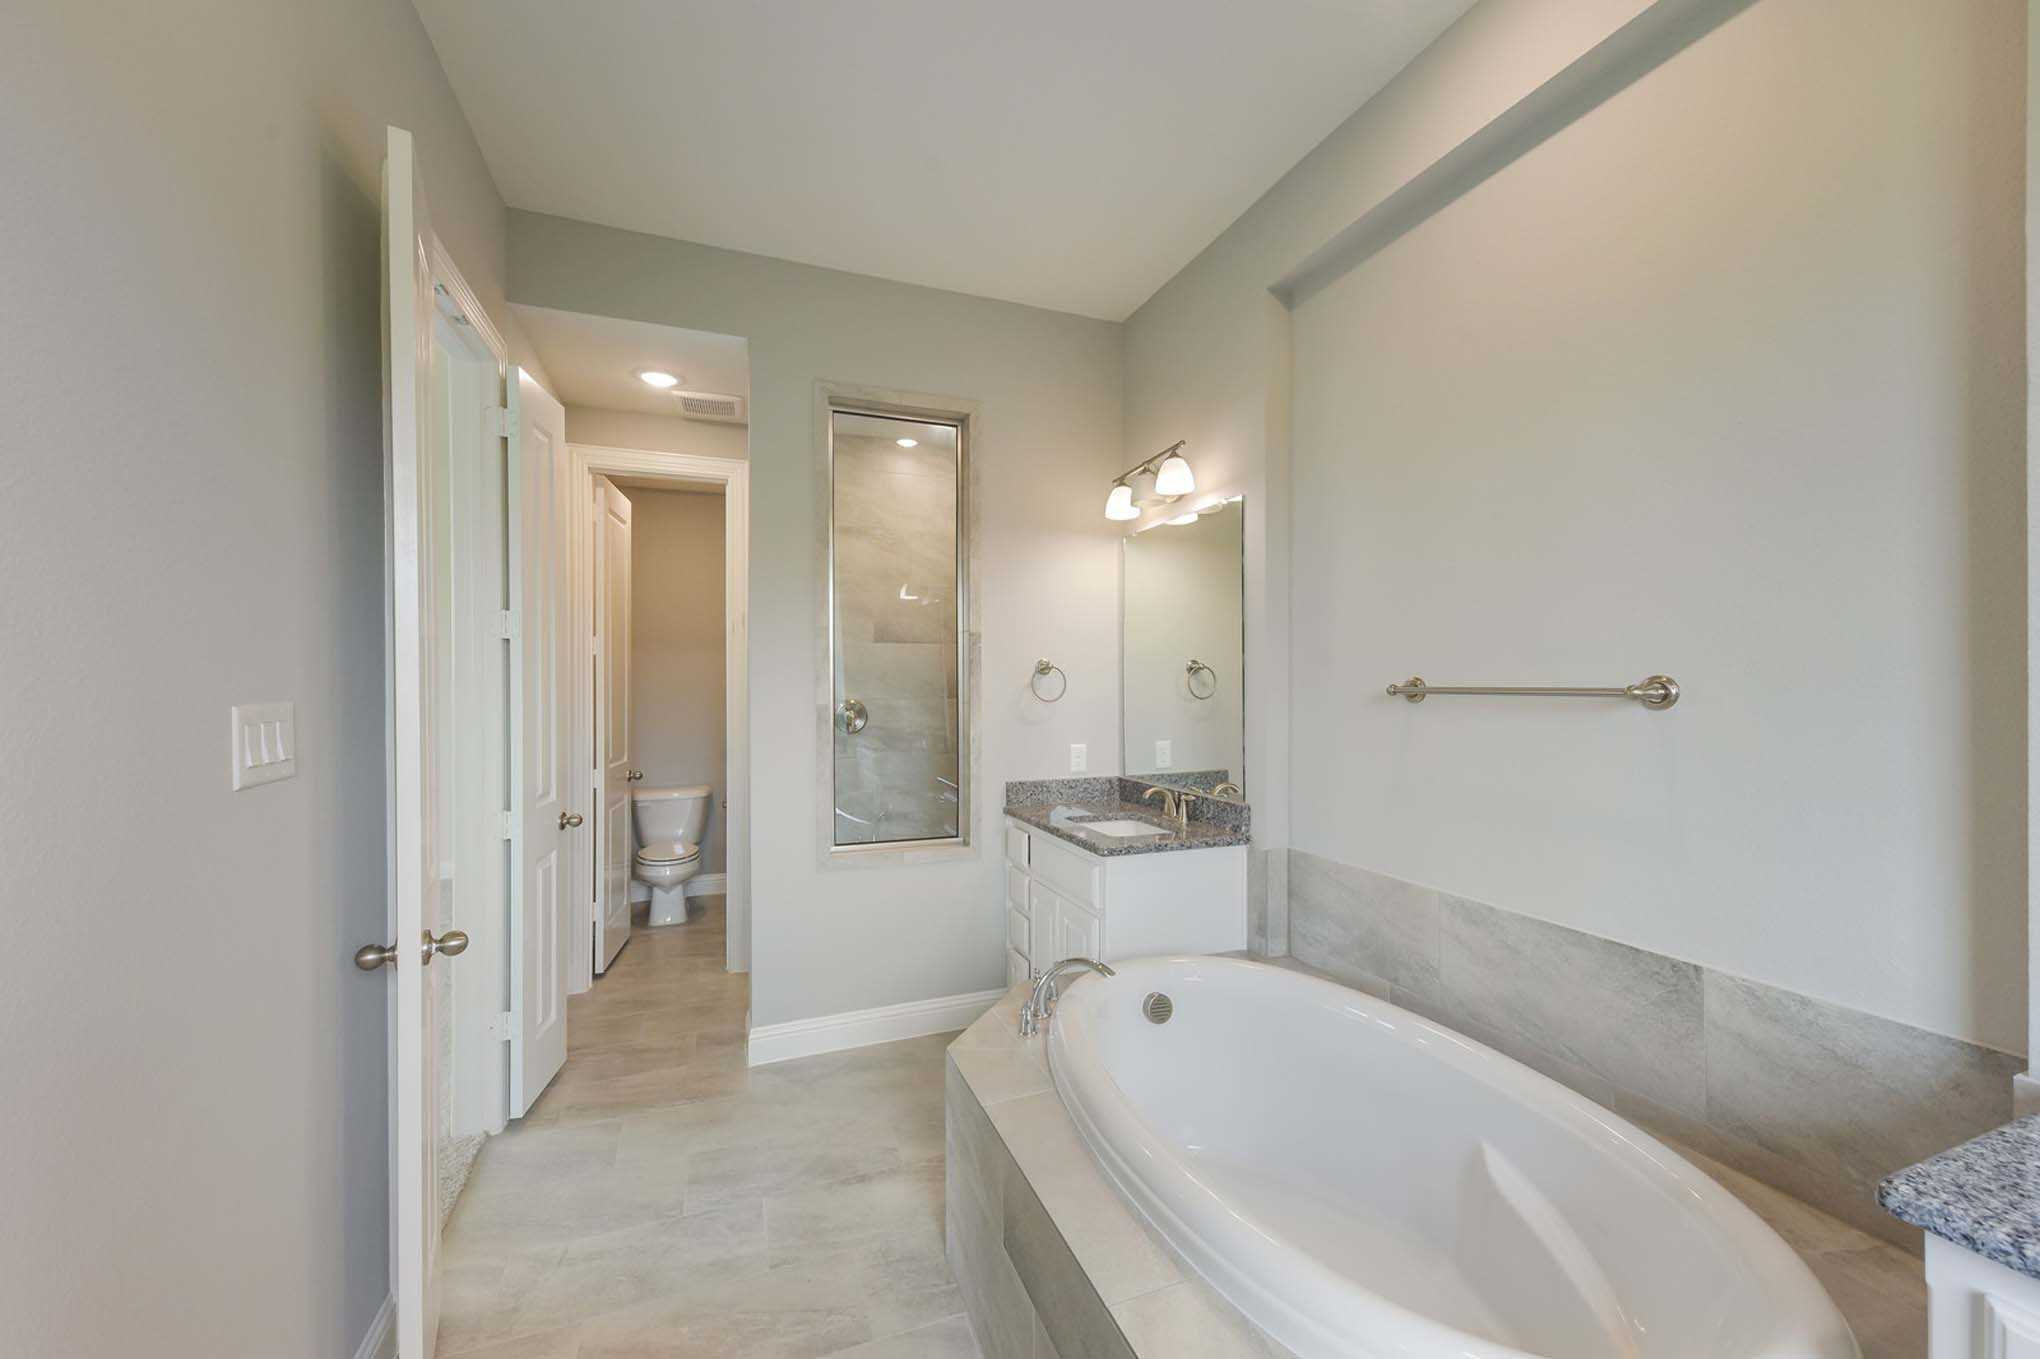 Bathroom featured in the Plan 277 By Highland Homes in Dallas, TX